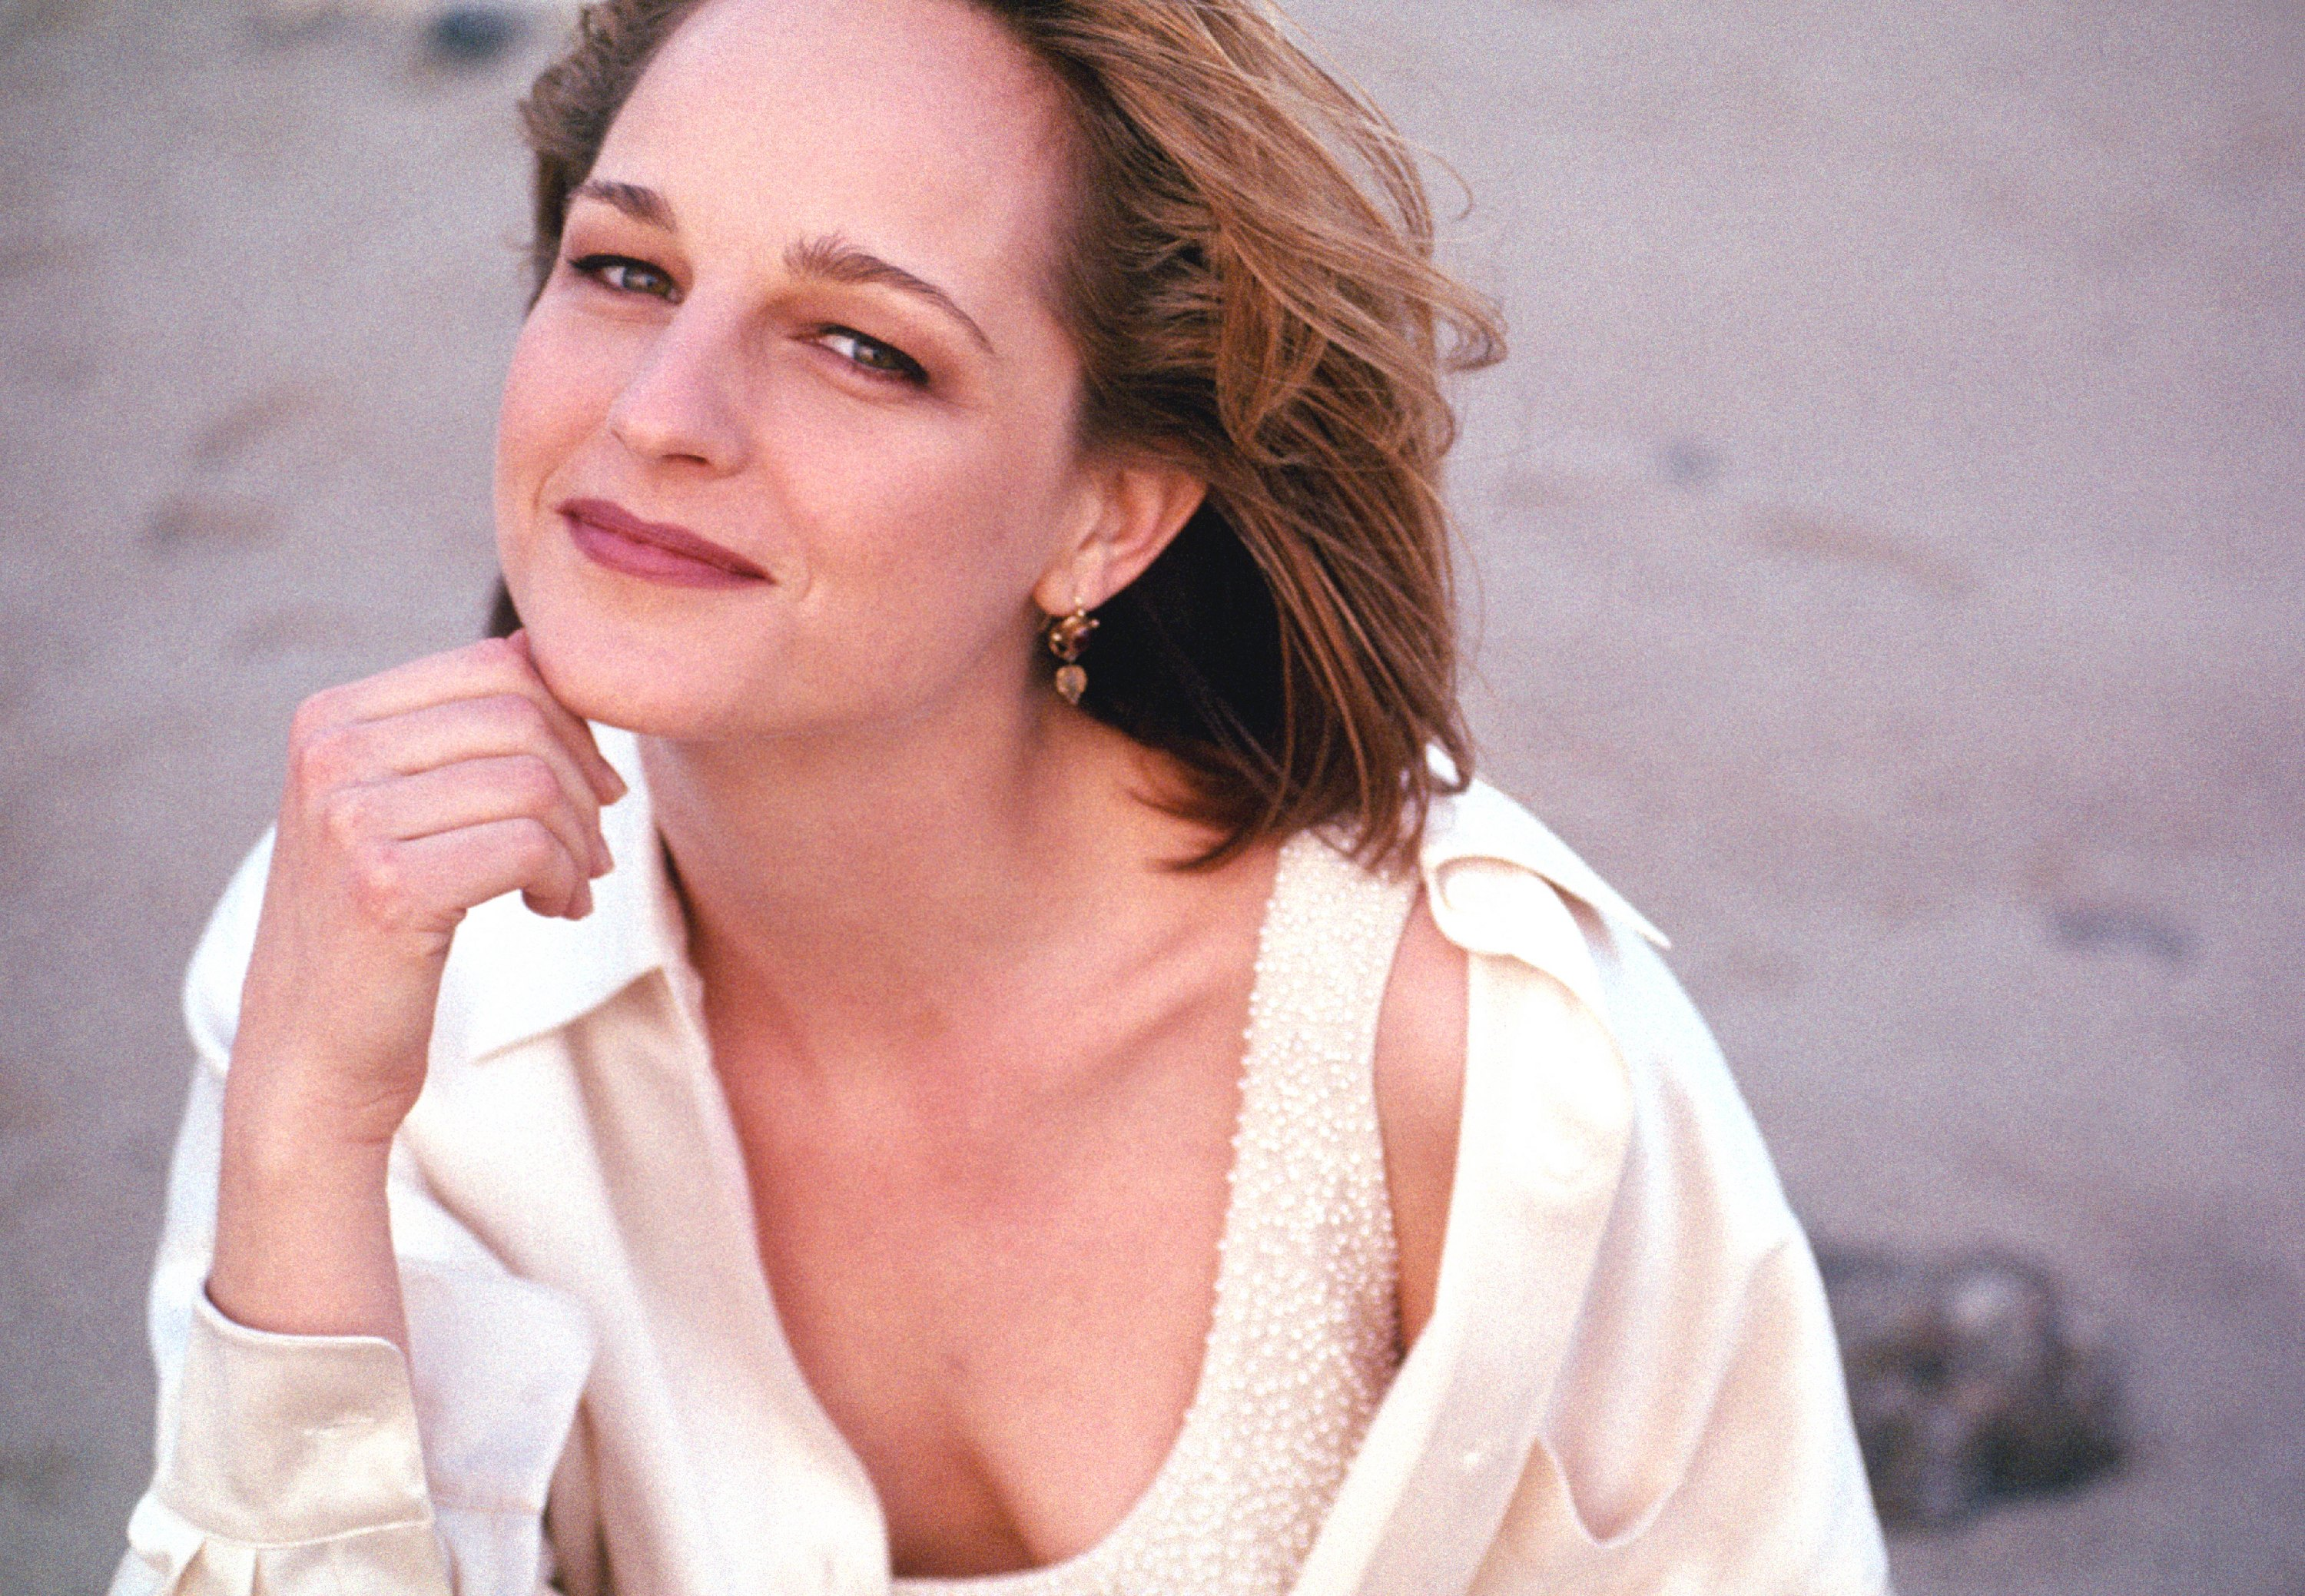 Helen Hunt image Dana Fineman Photoshoot HD wallpapers and